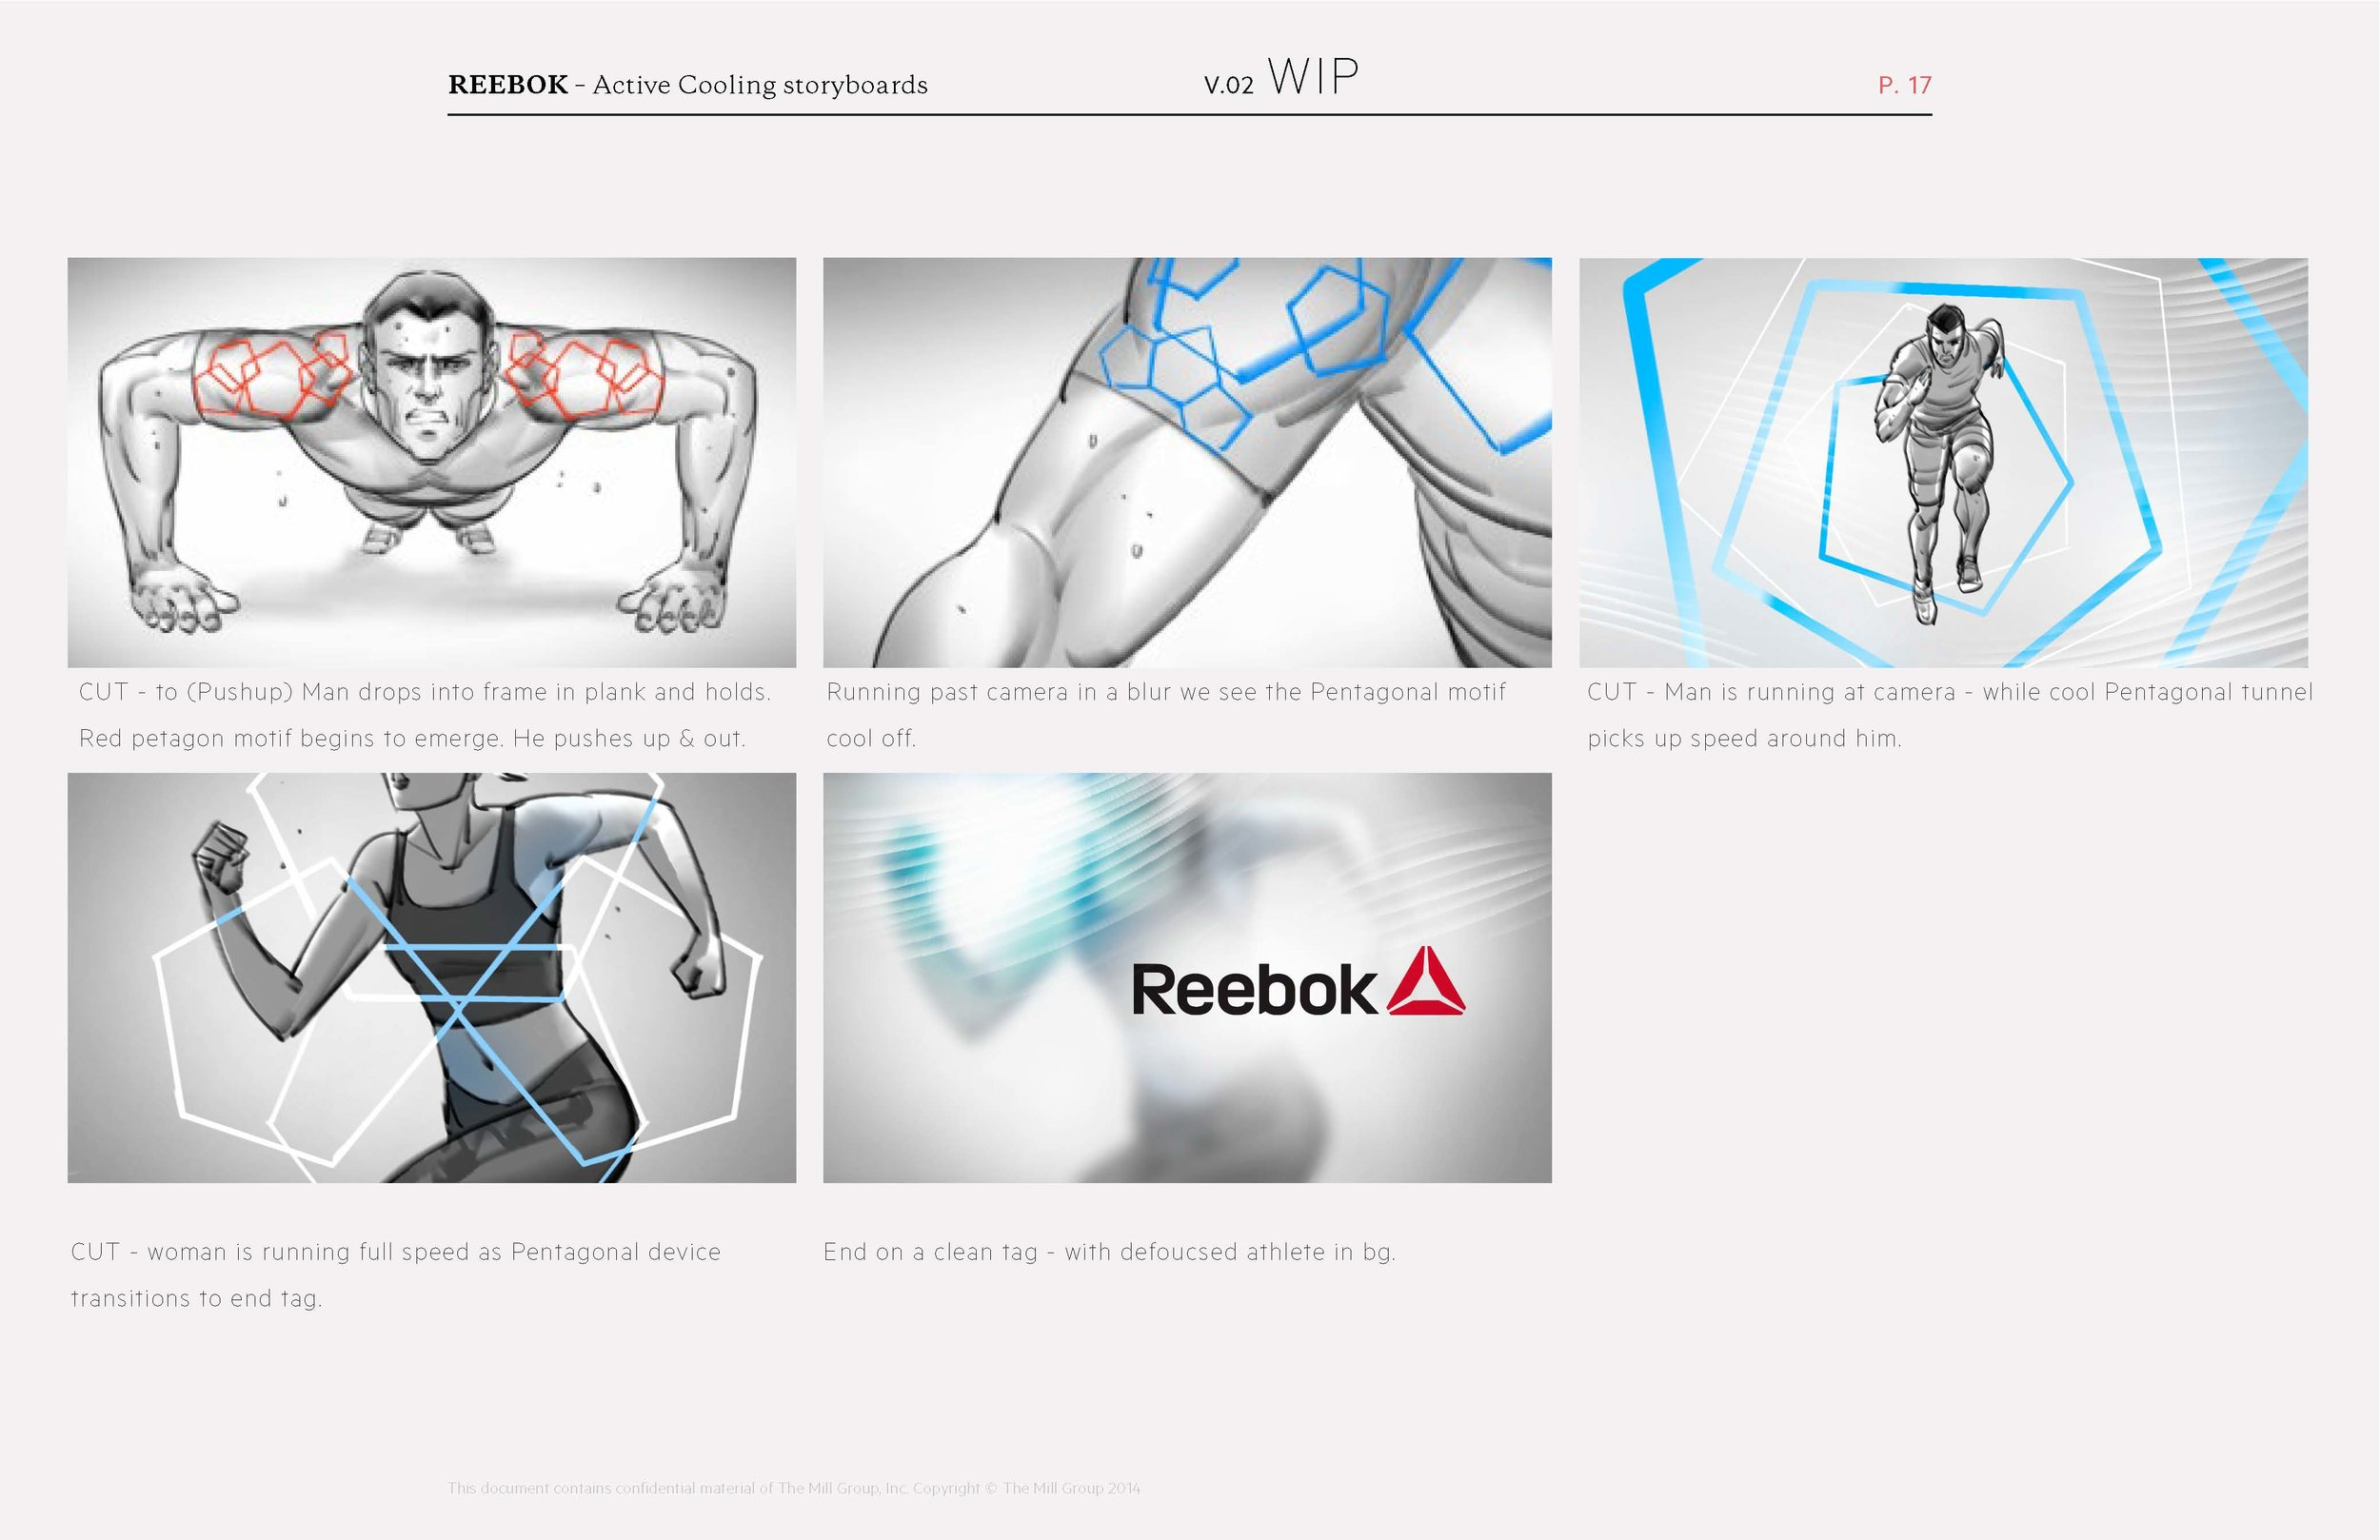 031914_Mill_Reebok_Active_Cooling_NW_17_Page_17.jpg